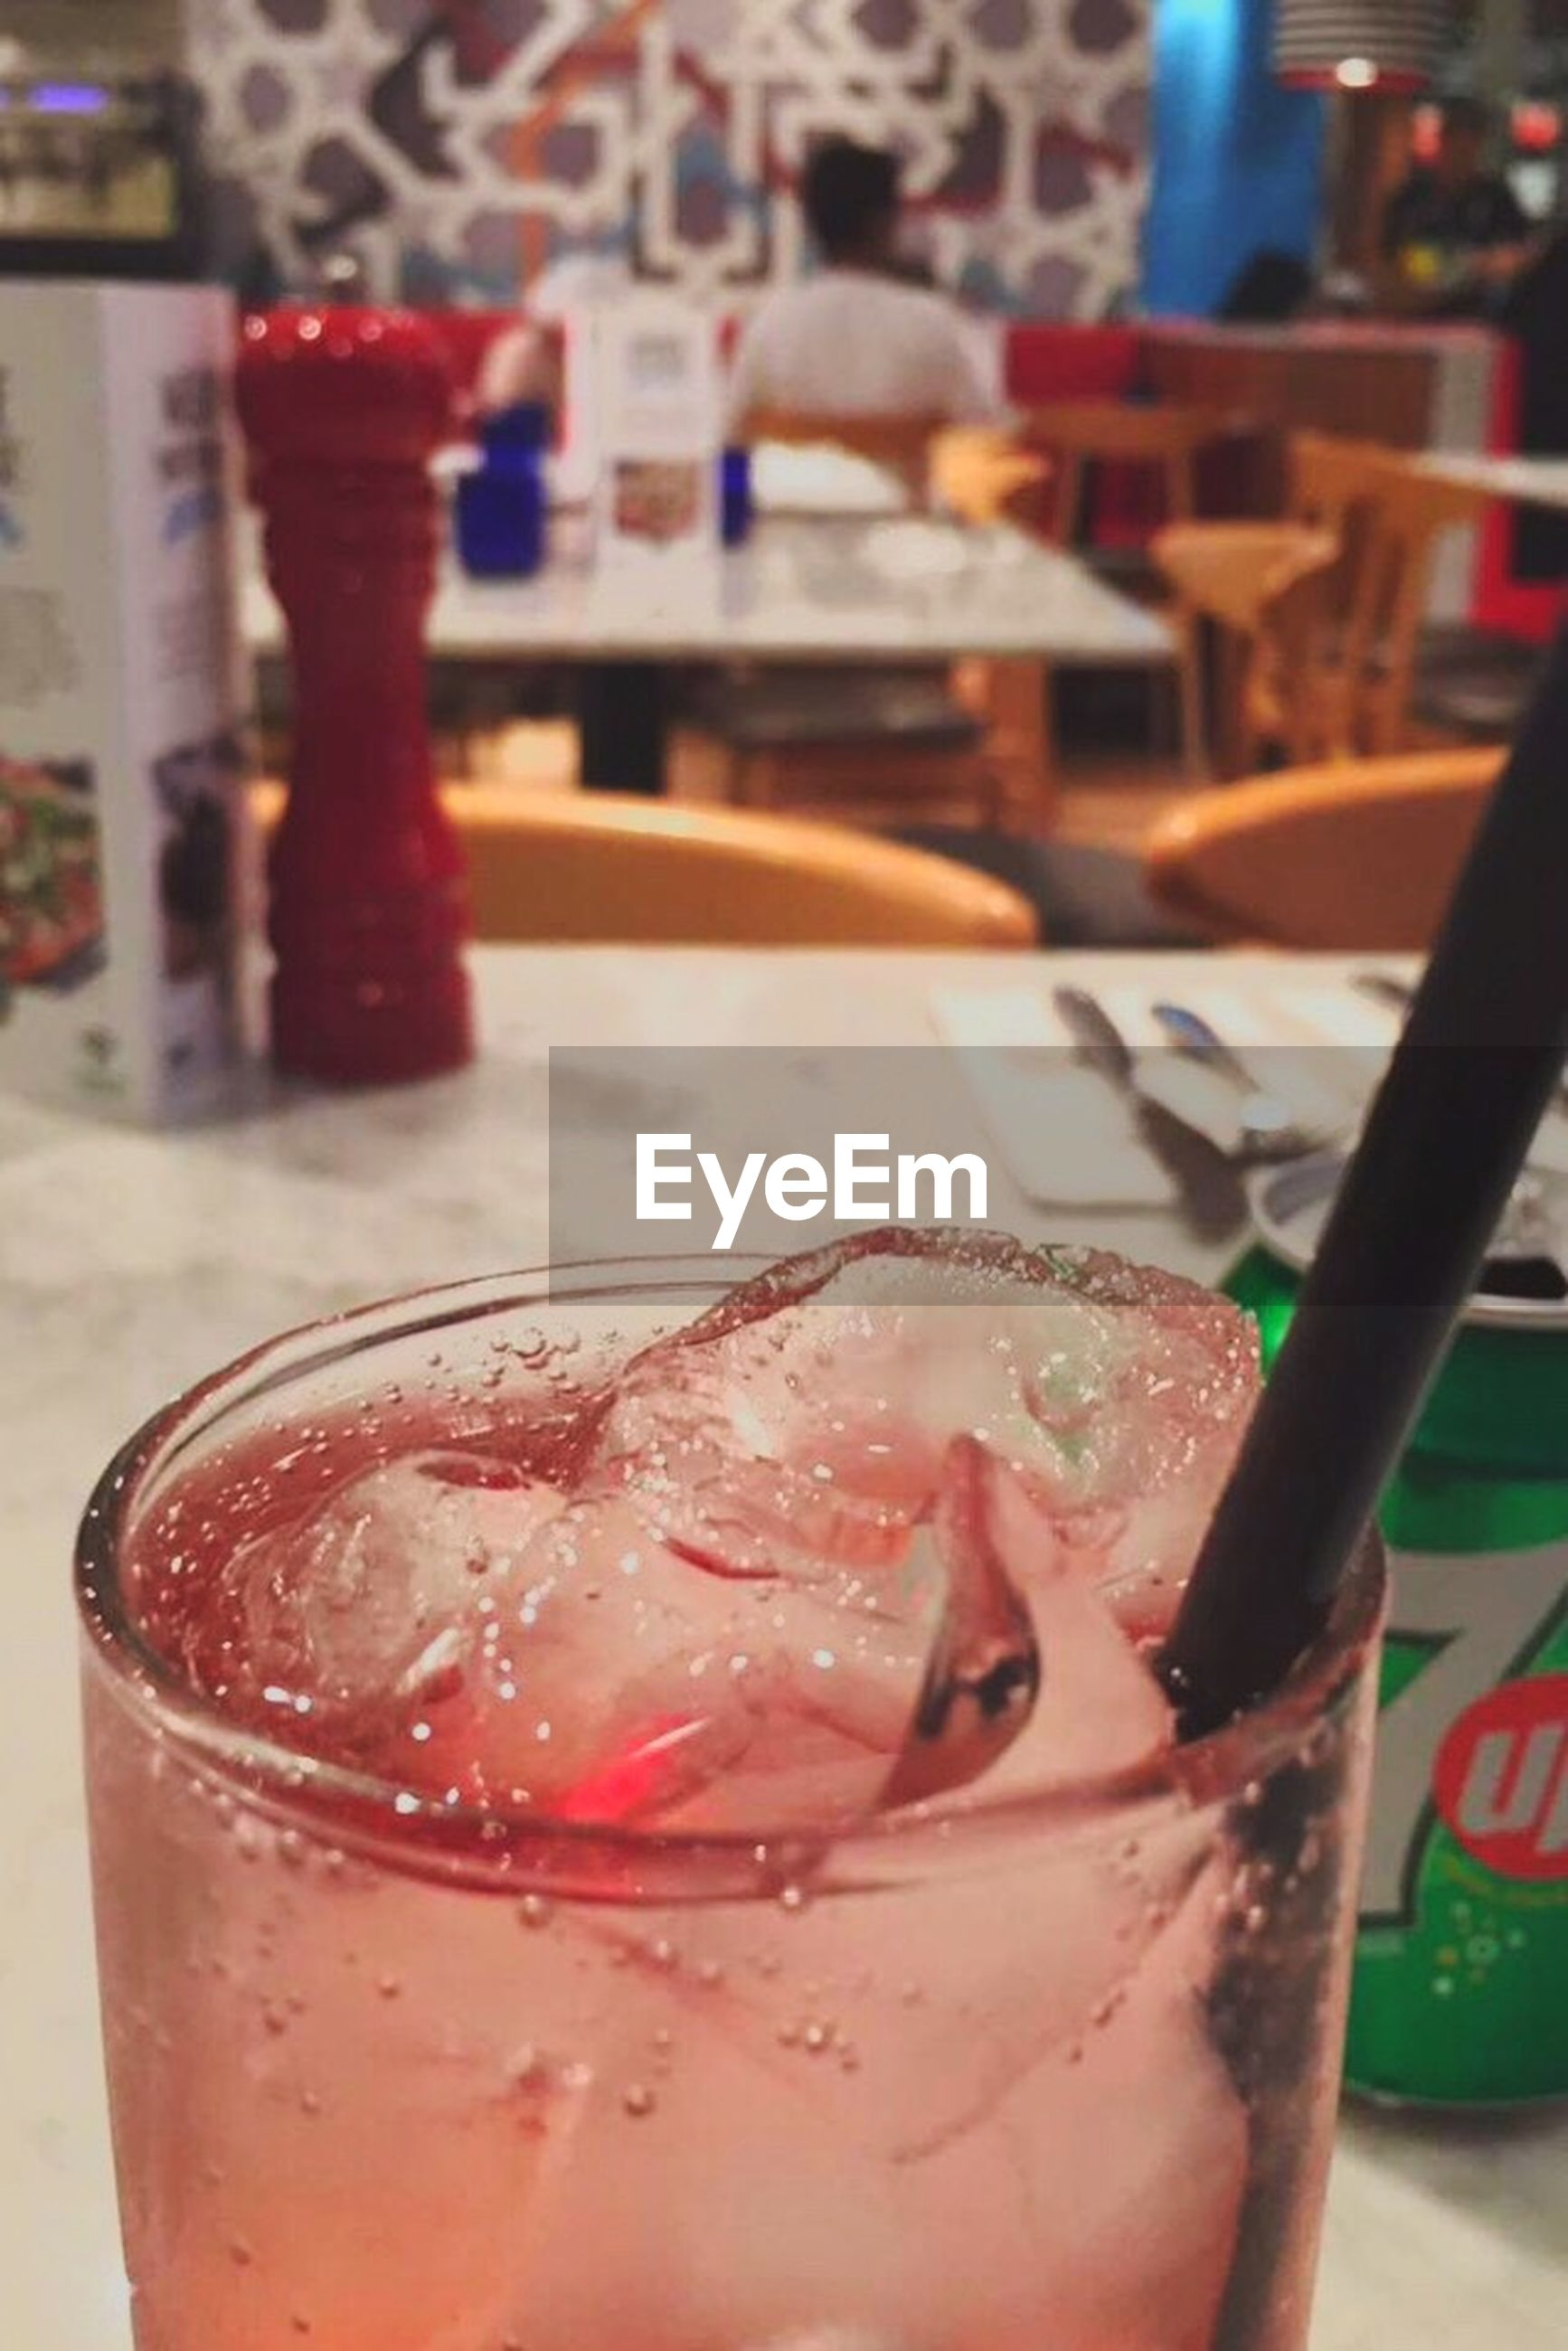 food and drink, indoors, freshness, food, drinking glass, red, focus on foreground, close-up, fruit, sweet food, indulgence, strawberry, ready-to-eat, temptation, serving size, juicy, dessert, non-alcoholic beverage, meal